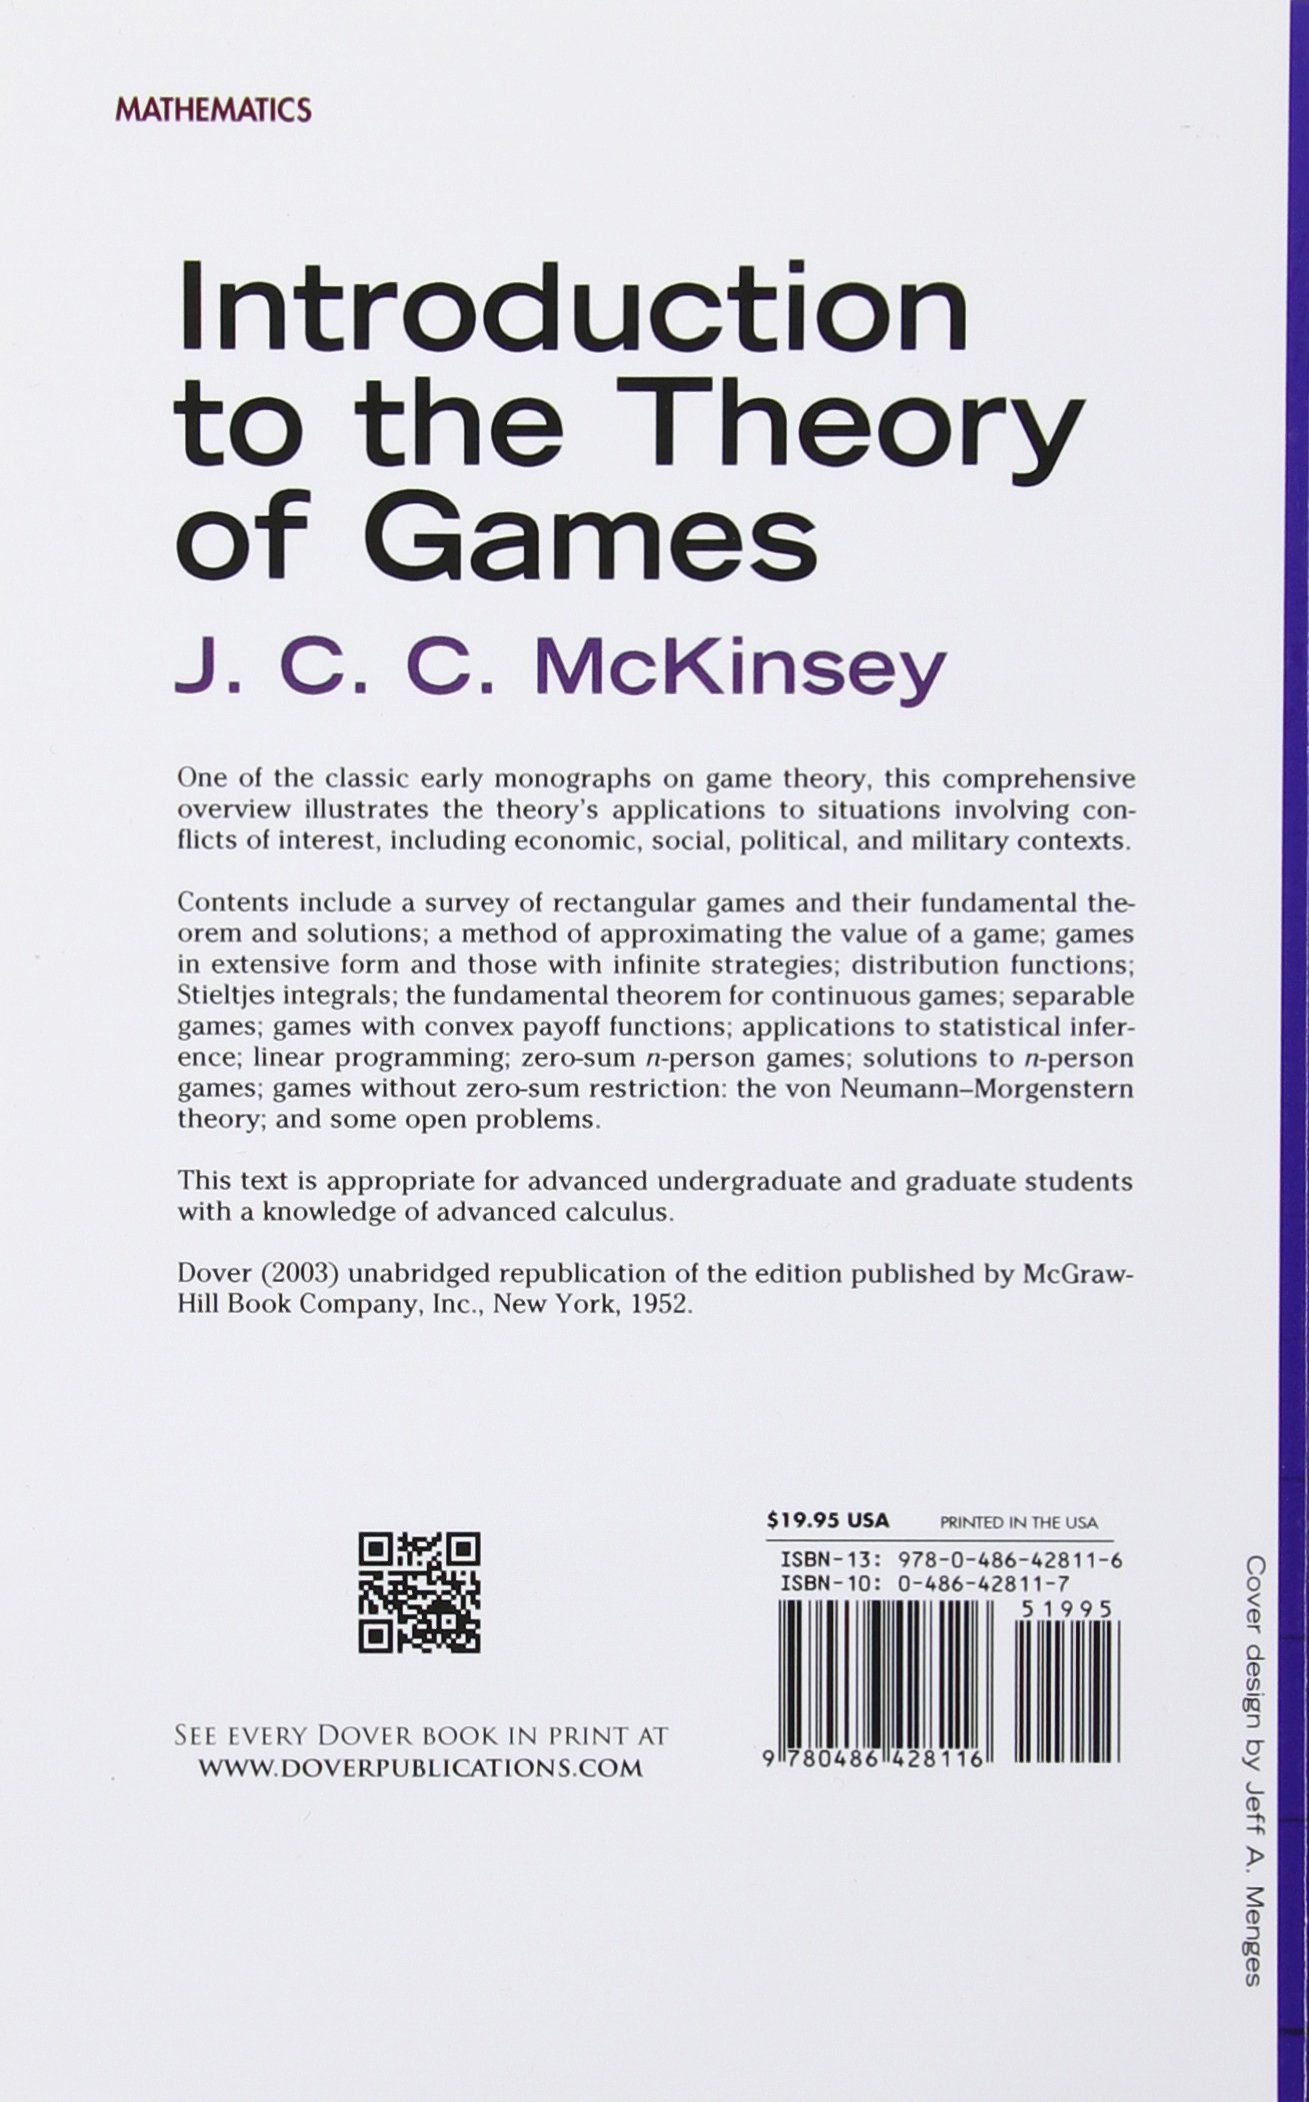 Game Theory: A Nontechnical Introduction by Morton D. Davis